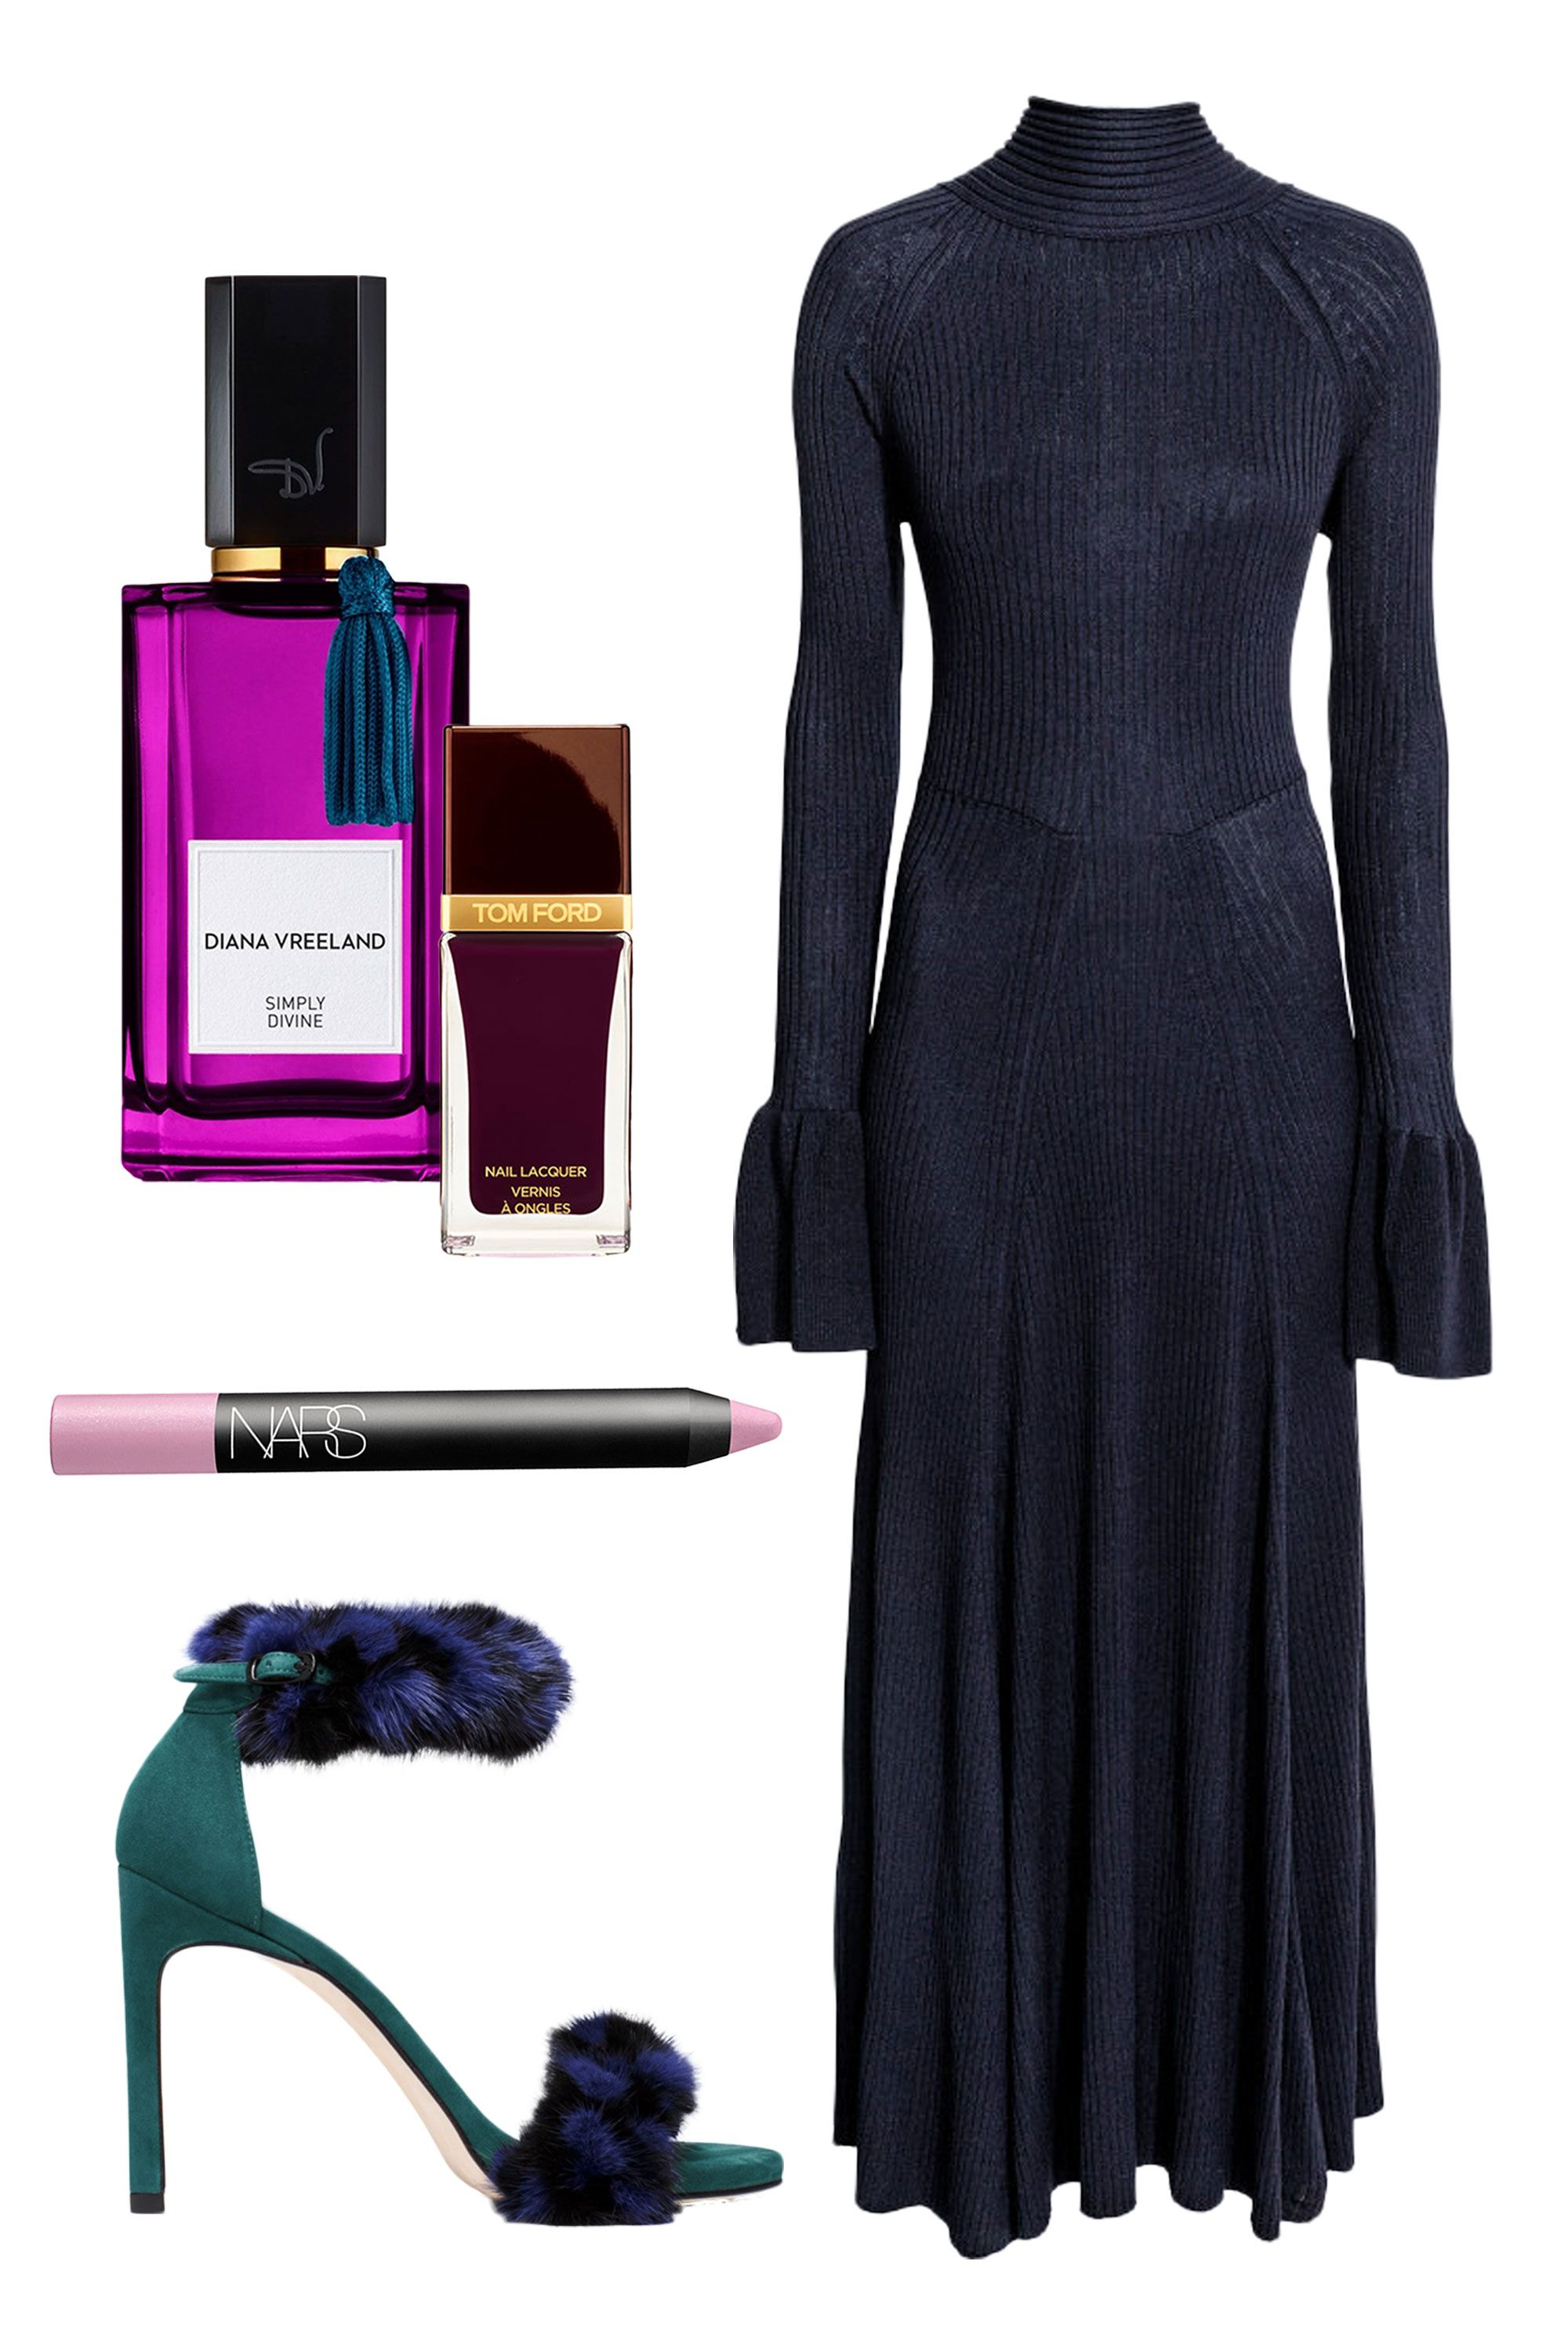 """<p>Long, lithe, sleek, and chic—this body-skimming gown is, somehow, simultaneously dramatic yet also mysterious and understated. Pair it with a purple haze of smoky eyeshadow and a touch offuzzinesson your feet for a bit of levity and flair. </p><p><br> </p><p><em data-redactor-tag=""""em"""">H&M Ribbed Dress With Flounces, $69.99, <a href=""""http://www.hm.com/us/product/53167?article=53167-A"""" target=""""_blank"""">hm.com</a>; The BunnyLove Sandal, $498, <a href=""""http://www.stuartweitzman.com/products/bunnylove/blue-and-nero-mink/?DepartmentId=360&DepartmentGroupId=62"""" target=""""_blank"""">stuartweitzman.com</a>; Diana Vreeland Simply Divine Eau de Parfum, $185, <a href=""""http://nordstrom.com http://shop.nordstrom.com/s/diana-vreeland-simply-divine-eau-de-parfum/4461869"""" target=""""_blank"""">nordstrom.com</a>; Nars Velvet Matte Lipstick Pencil in Paimpol, $26, <a href=""""http://nordstrom.com http://shop.nordstrom.com/s/nars-velvet-matte-lipstick-pencil/2893794"""" target=""""_blank"""">nordstrom.com</a>; Tom Ford Nail Lacquer in African Violet, $36, <a href=""""http://www.neimanmarcus.com/TOM-FORD-Nail-Lacquer-Nail-Care/prod179760230_cat10470830__/p.prod?icid=&searchType=EndecaDrivenCat&rte=%252Fcategory.jsp%253FitemId%253Dcat10470830%2526pageSize%253D30%2526No%253D0%2526refinements%253D&eItemId=prod179760230&cmCat=product"""" target=""""_blank"""">neimanmarcus.com</a></em><br></p>"""